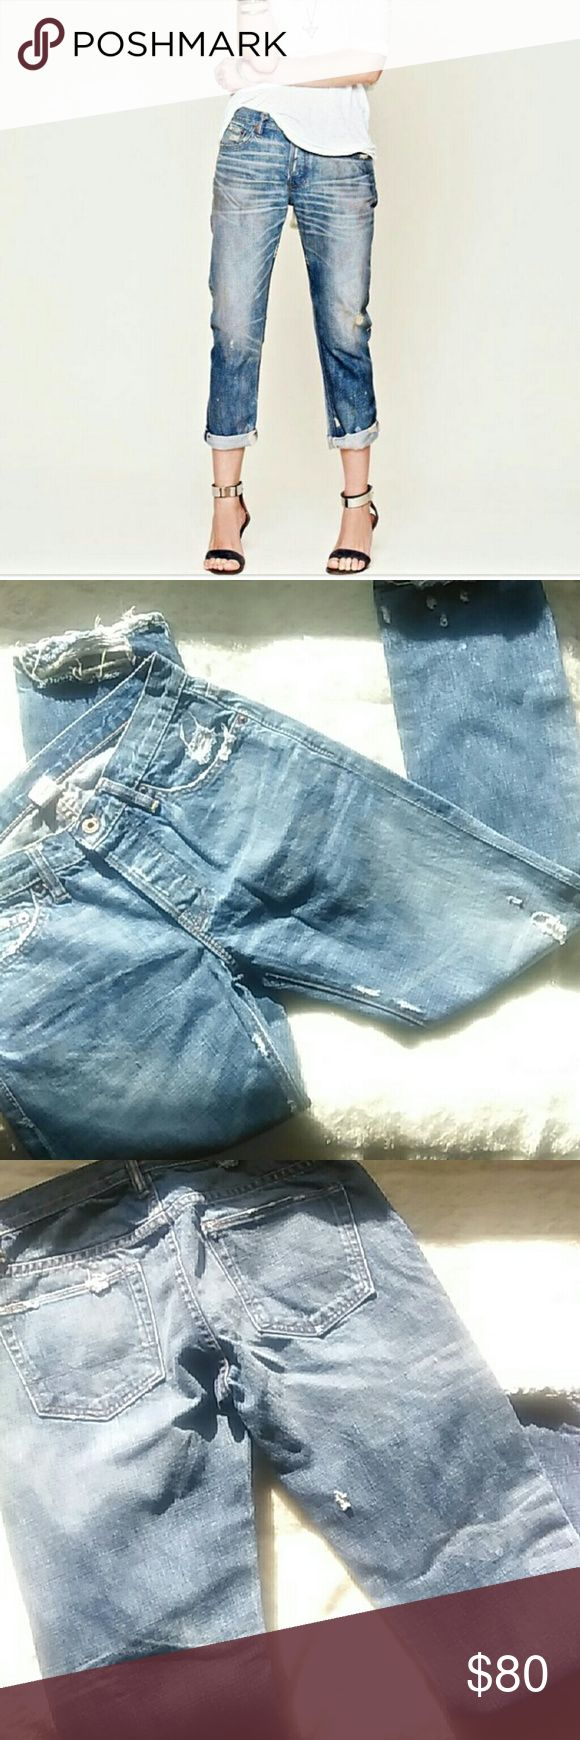 NSF Slouch Jeans Great oil stained, distressed,  straight slouch jeans size 24. NSF Jeans Straight Leg